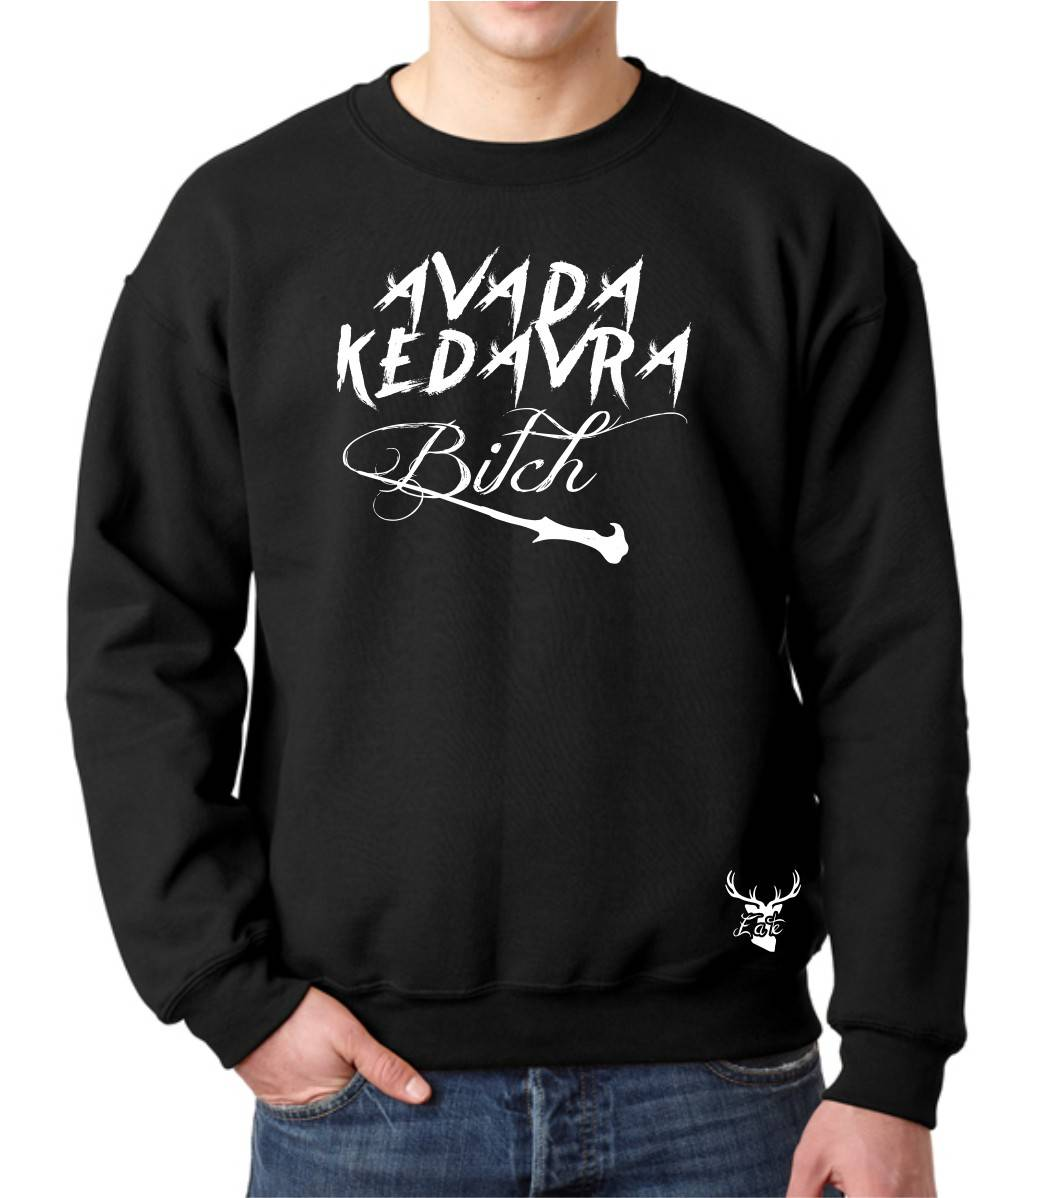 AVADA KEDAVRA BITCH FLEECE